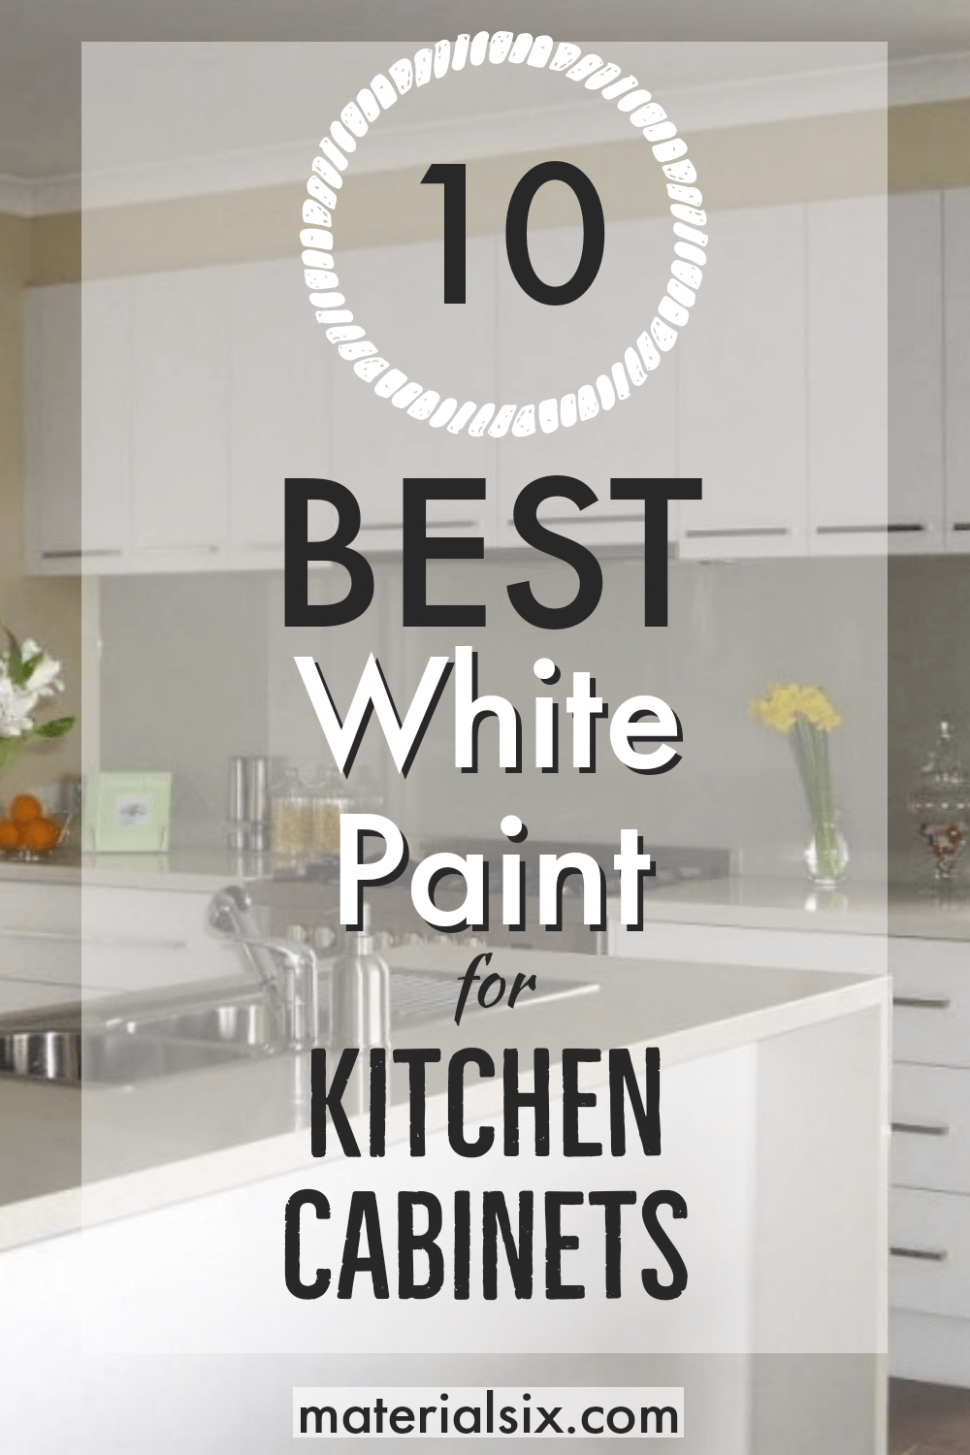 8 Best White Paint for Kitchen Cabinets - MaterialSix